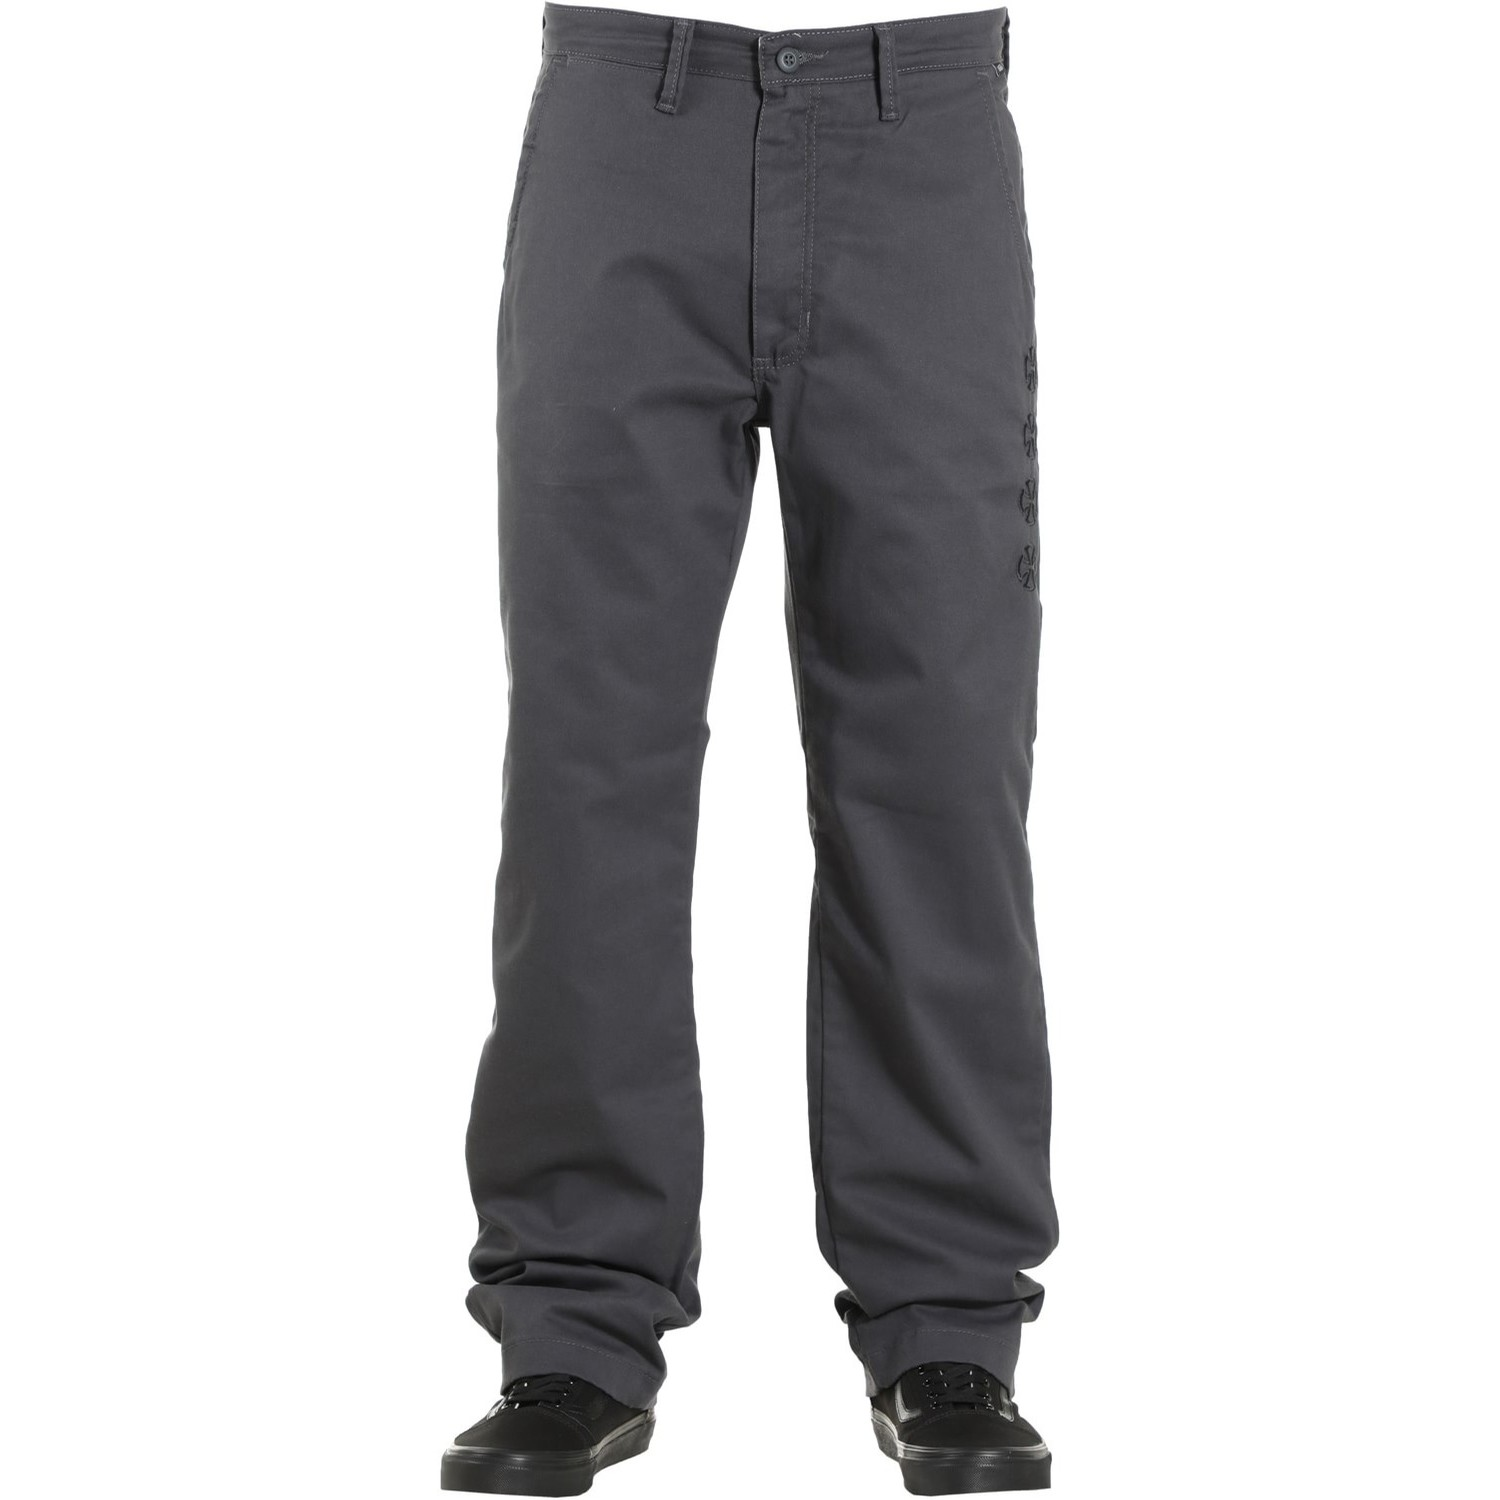 Authentic Chino Pro Pant (Independent) Asphalt 0aa11ec685